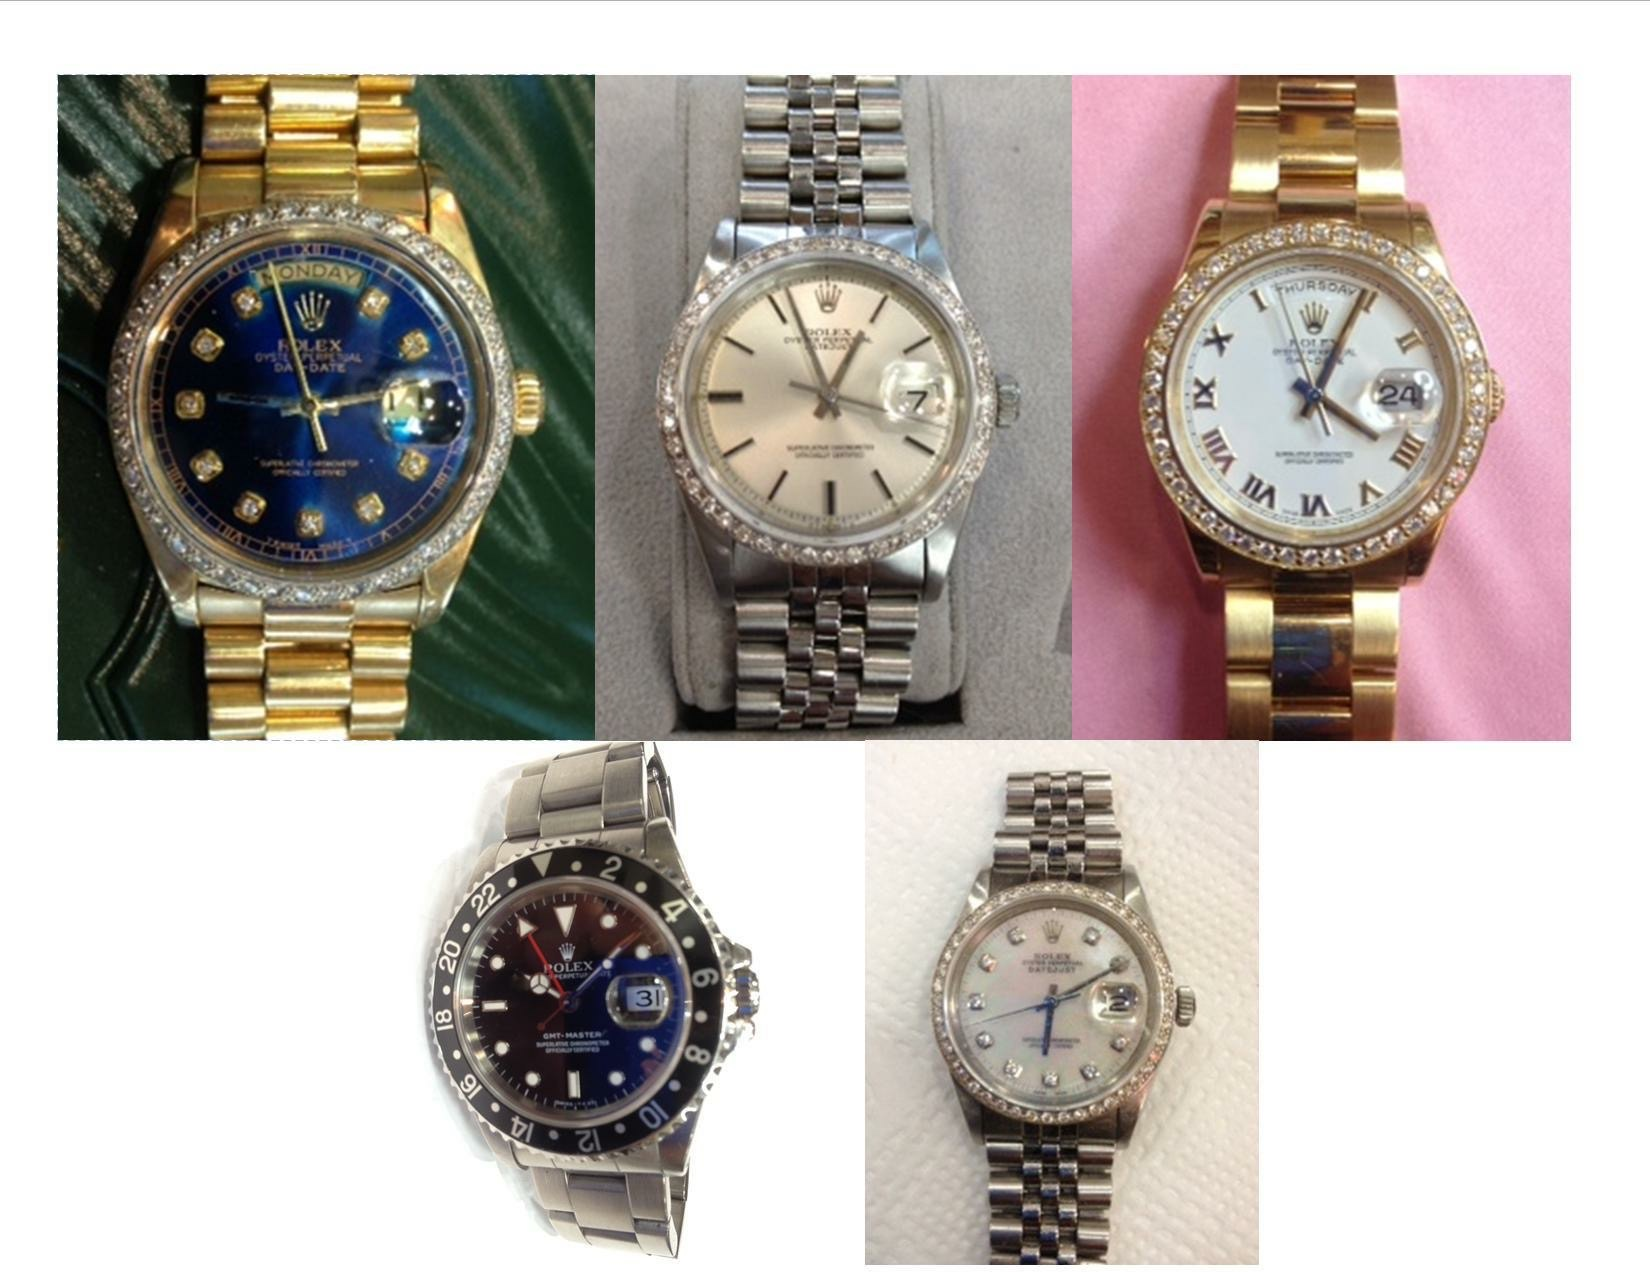 Consignment watch sales